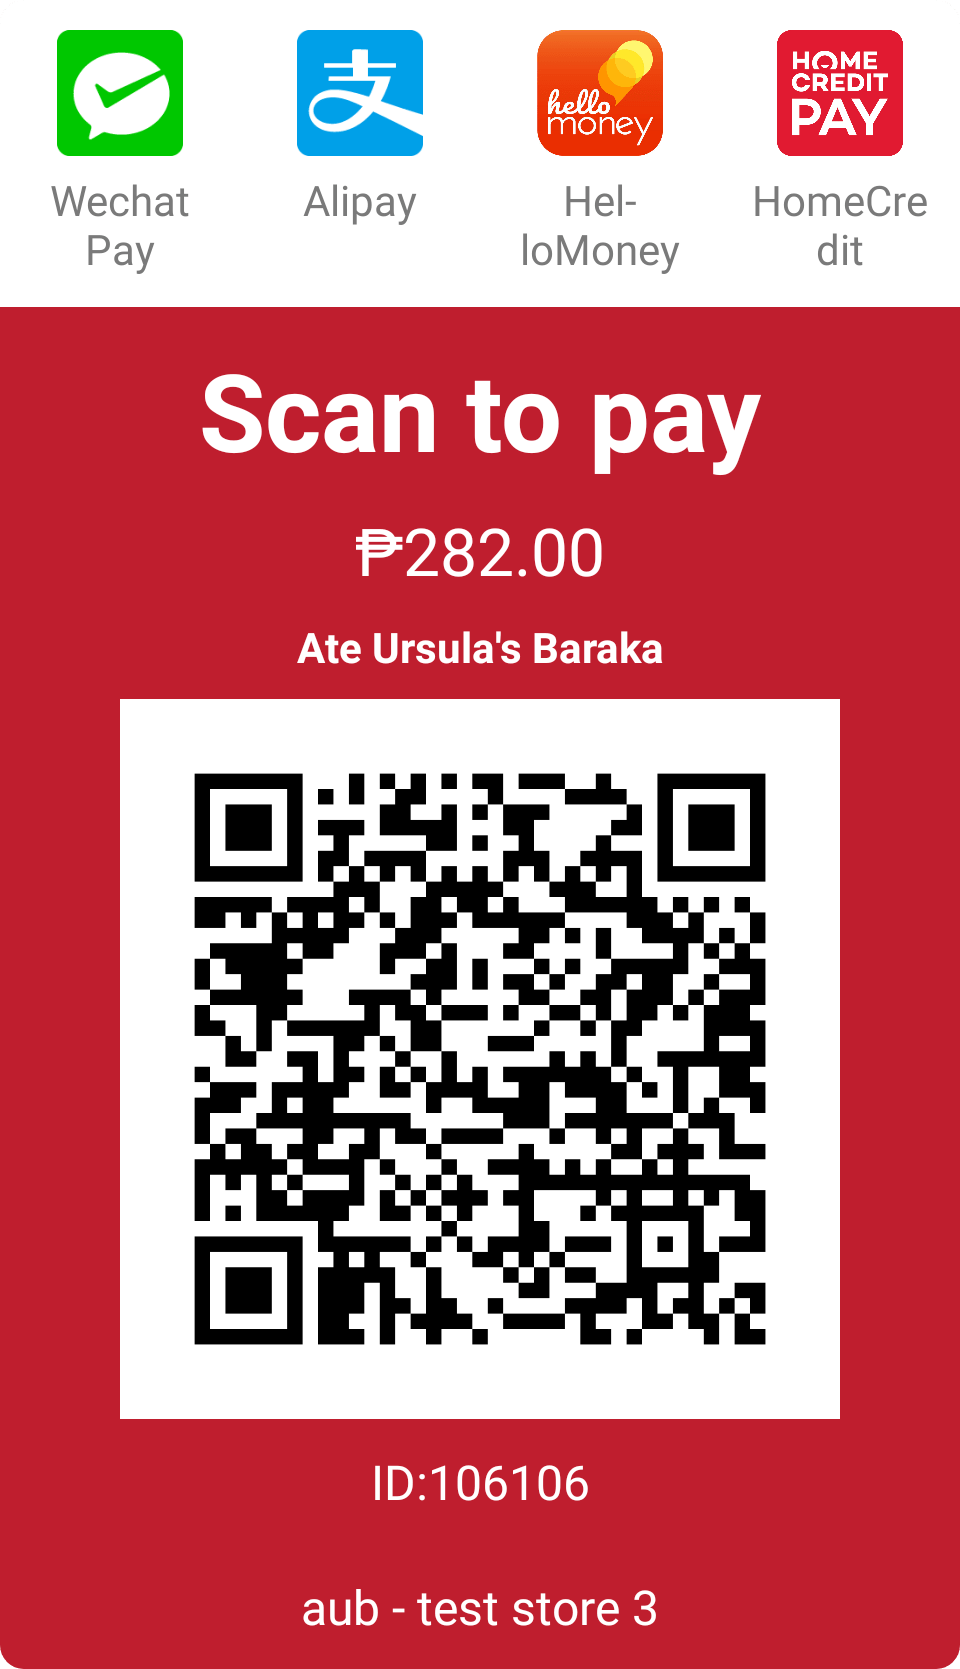 Scan to Pay QR code for WeChat Pay, Alipay, HelloMoney, and HomeCredit Pay